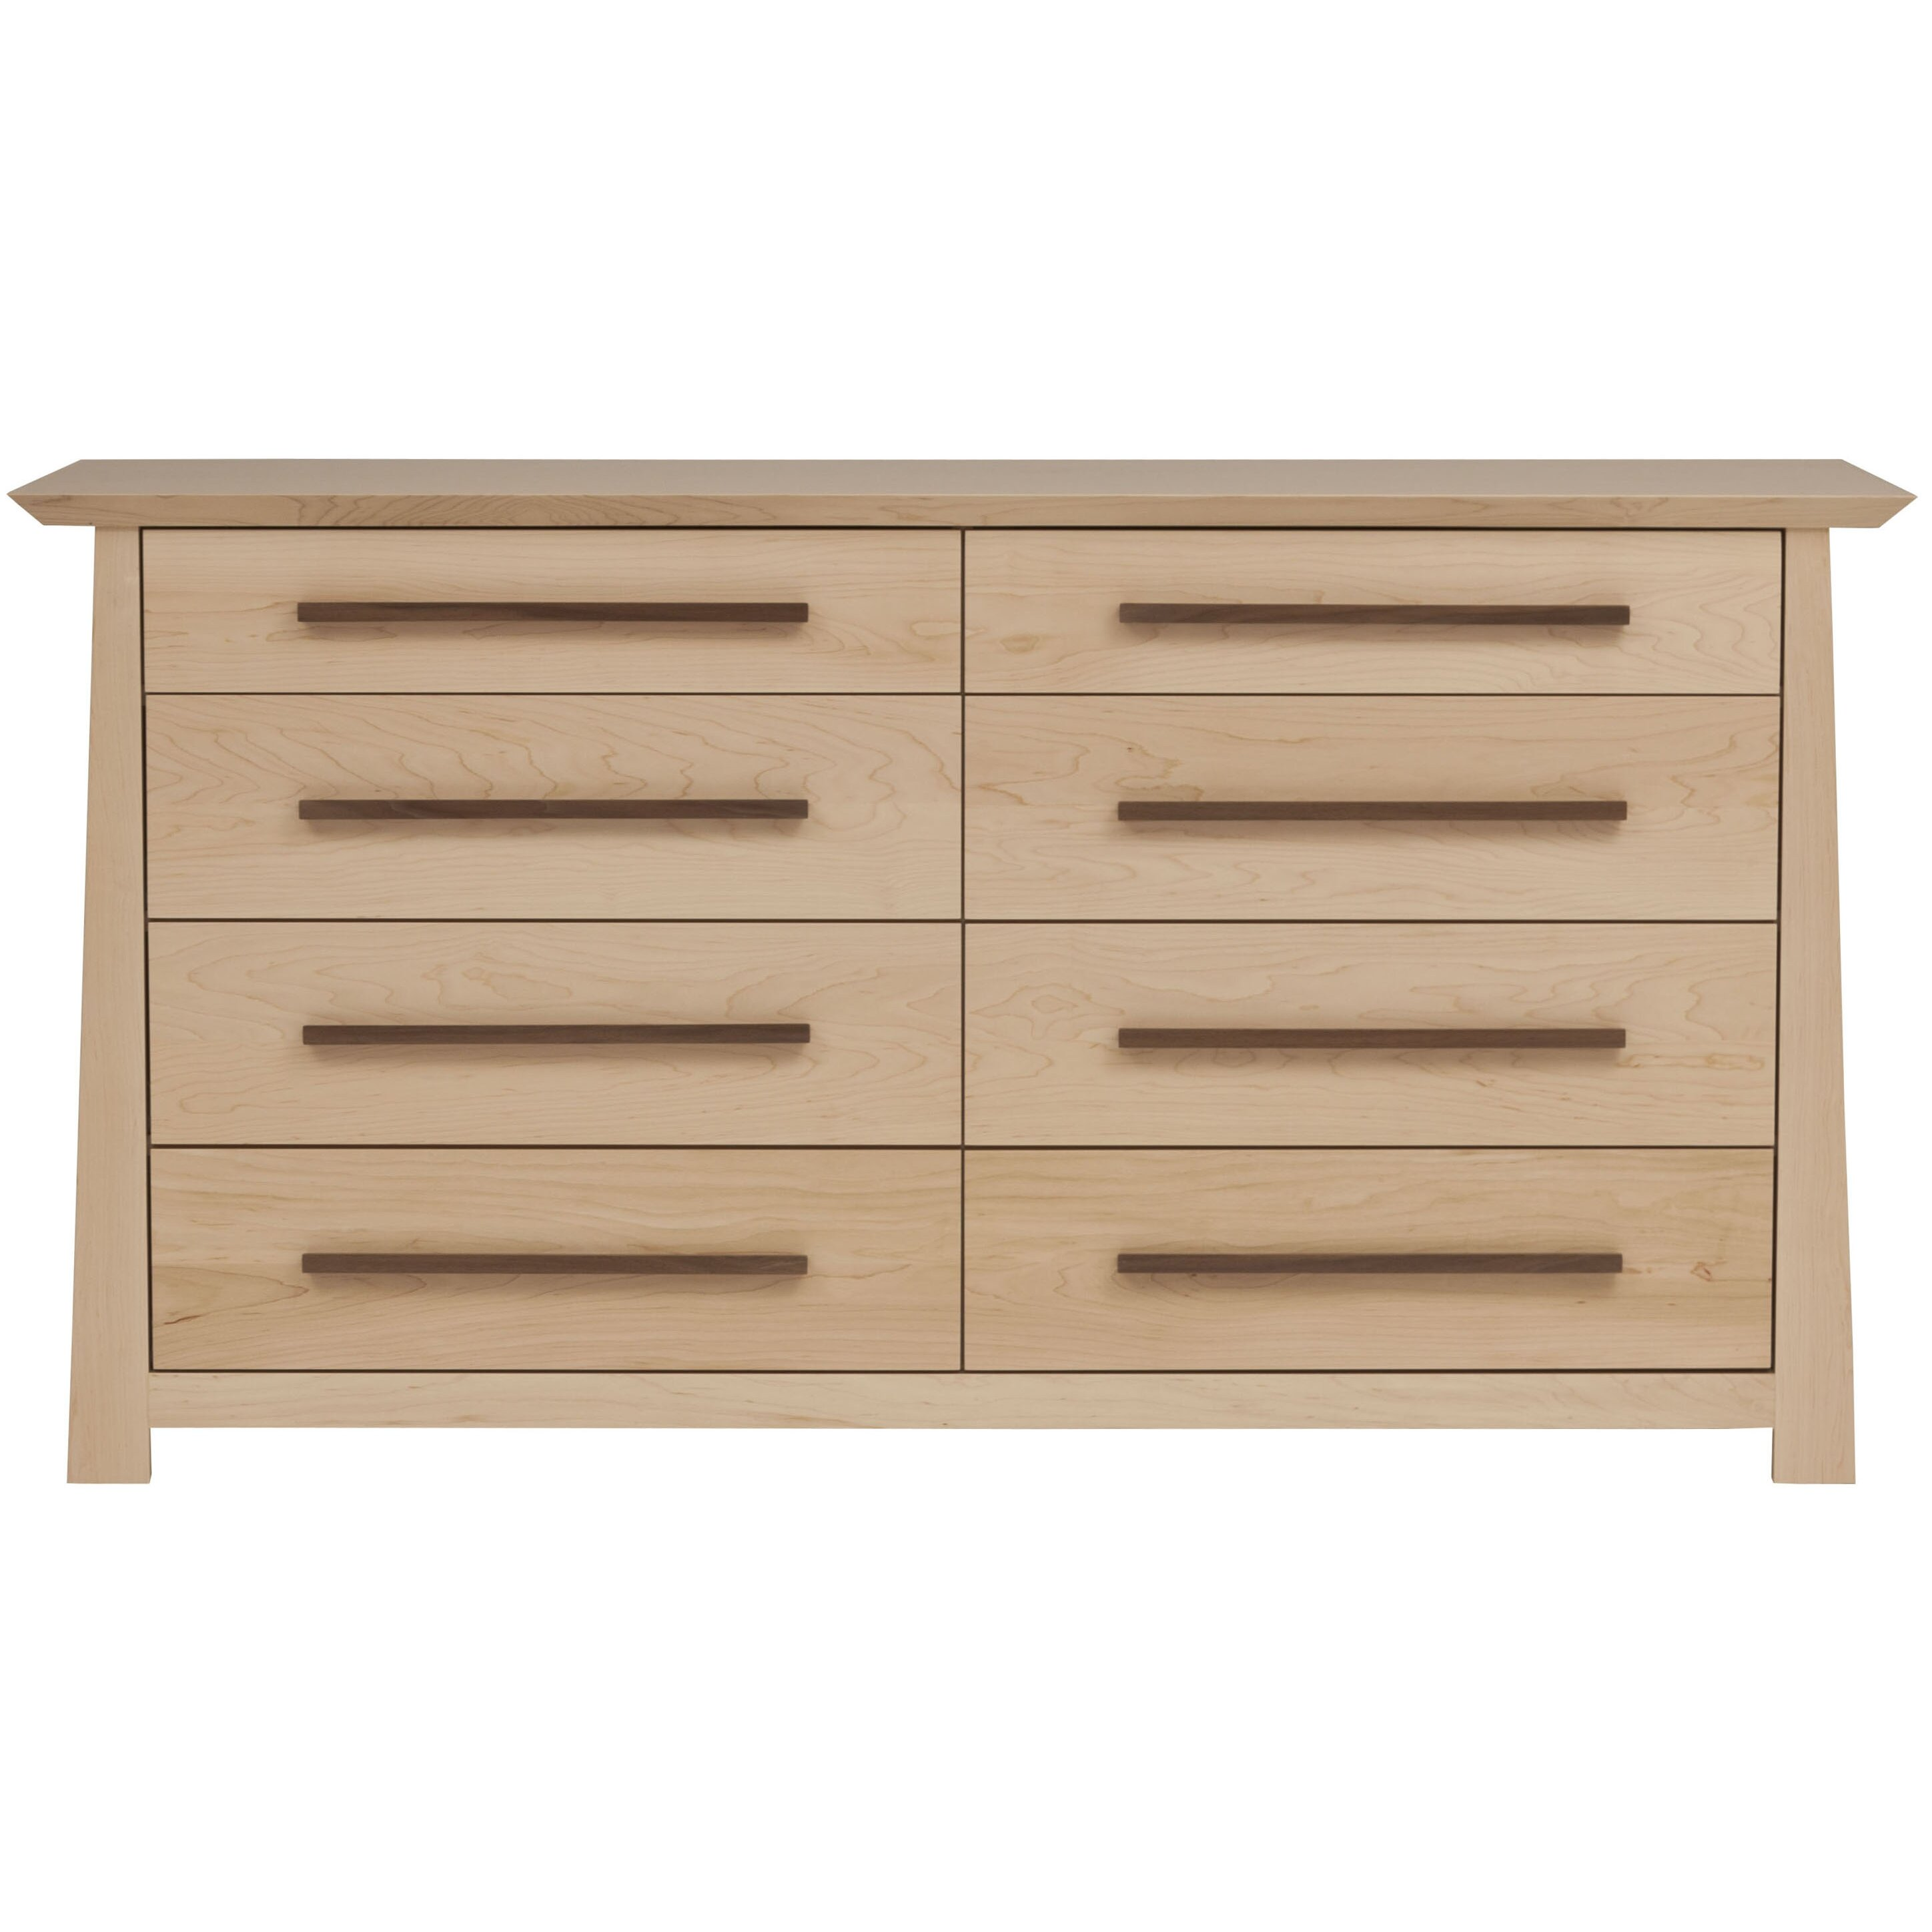 Urbangreen hamilton 8 drawer dresser wayfair for Furniture 2 day shipping